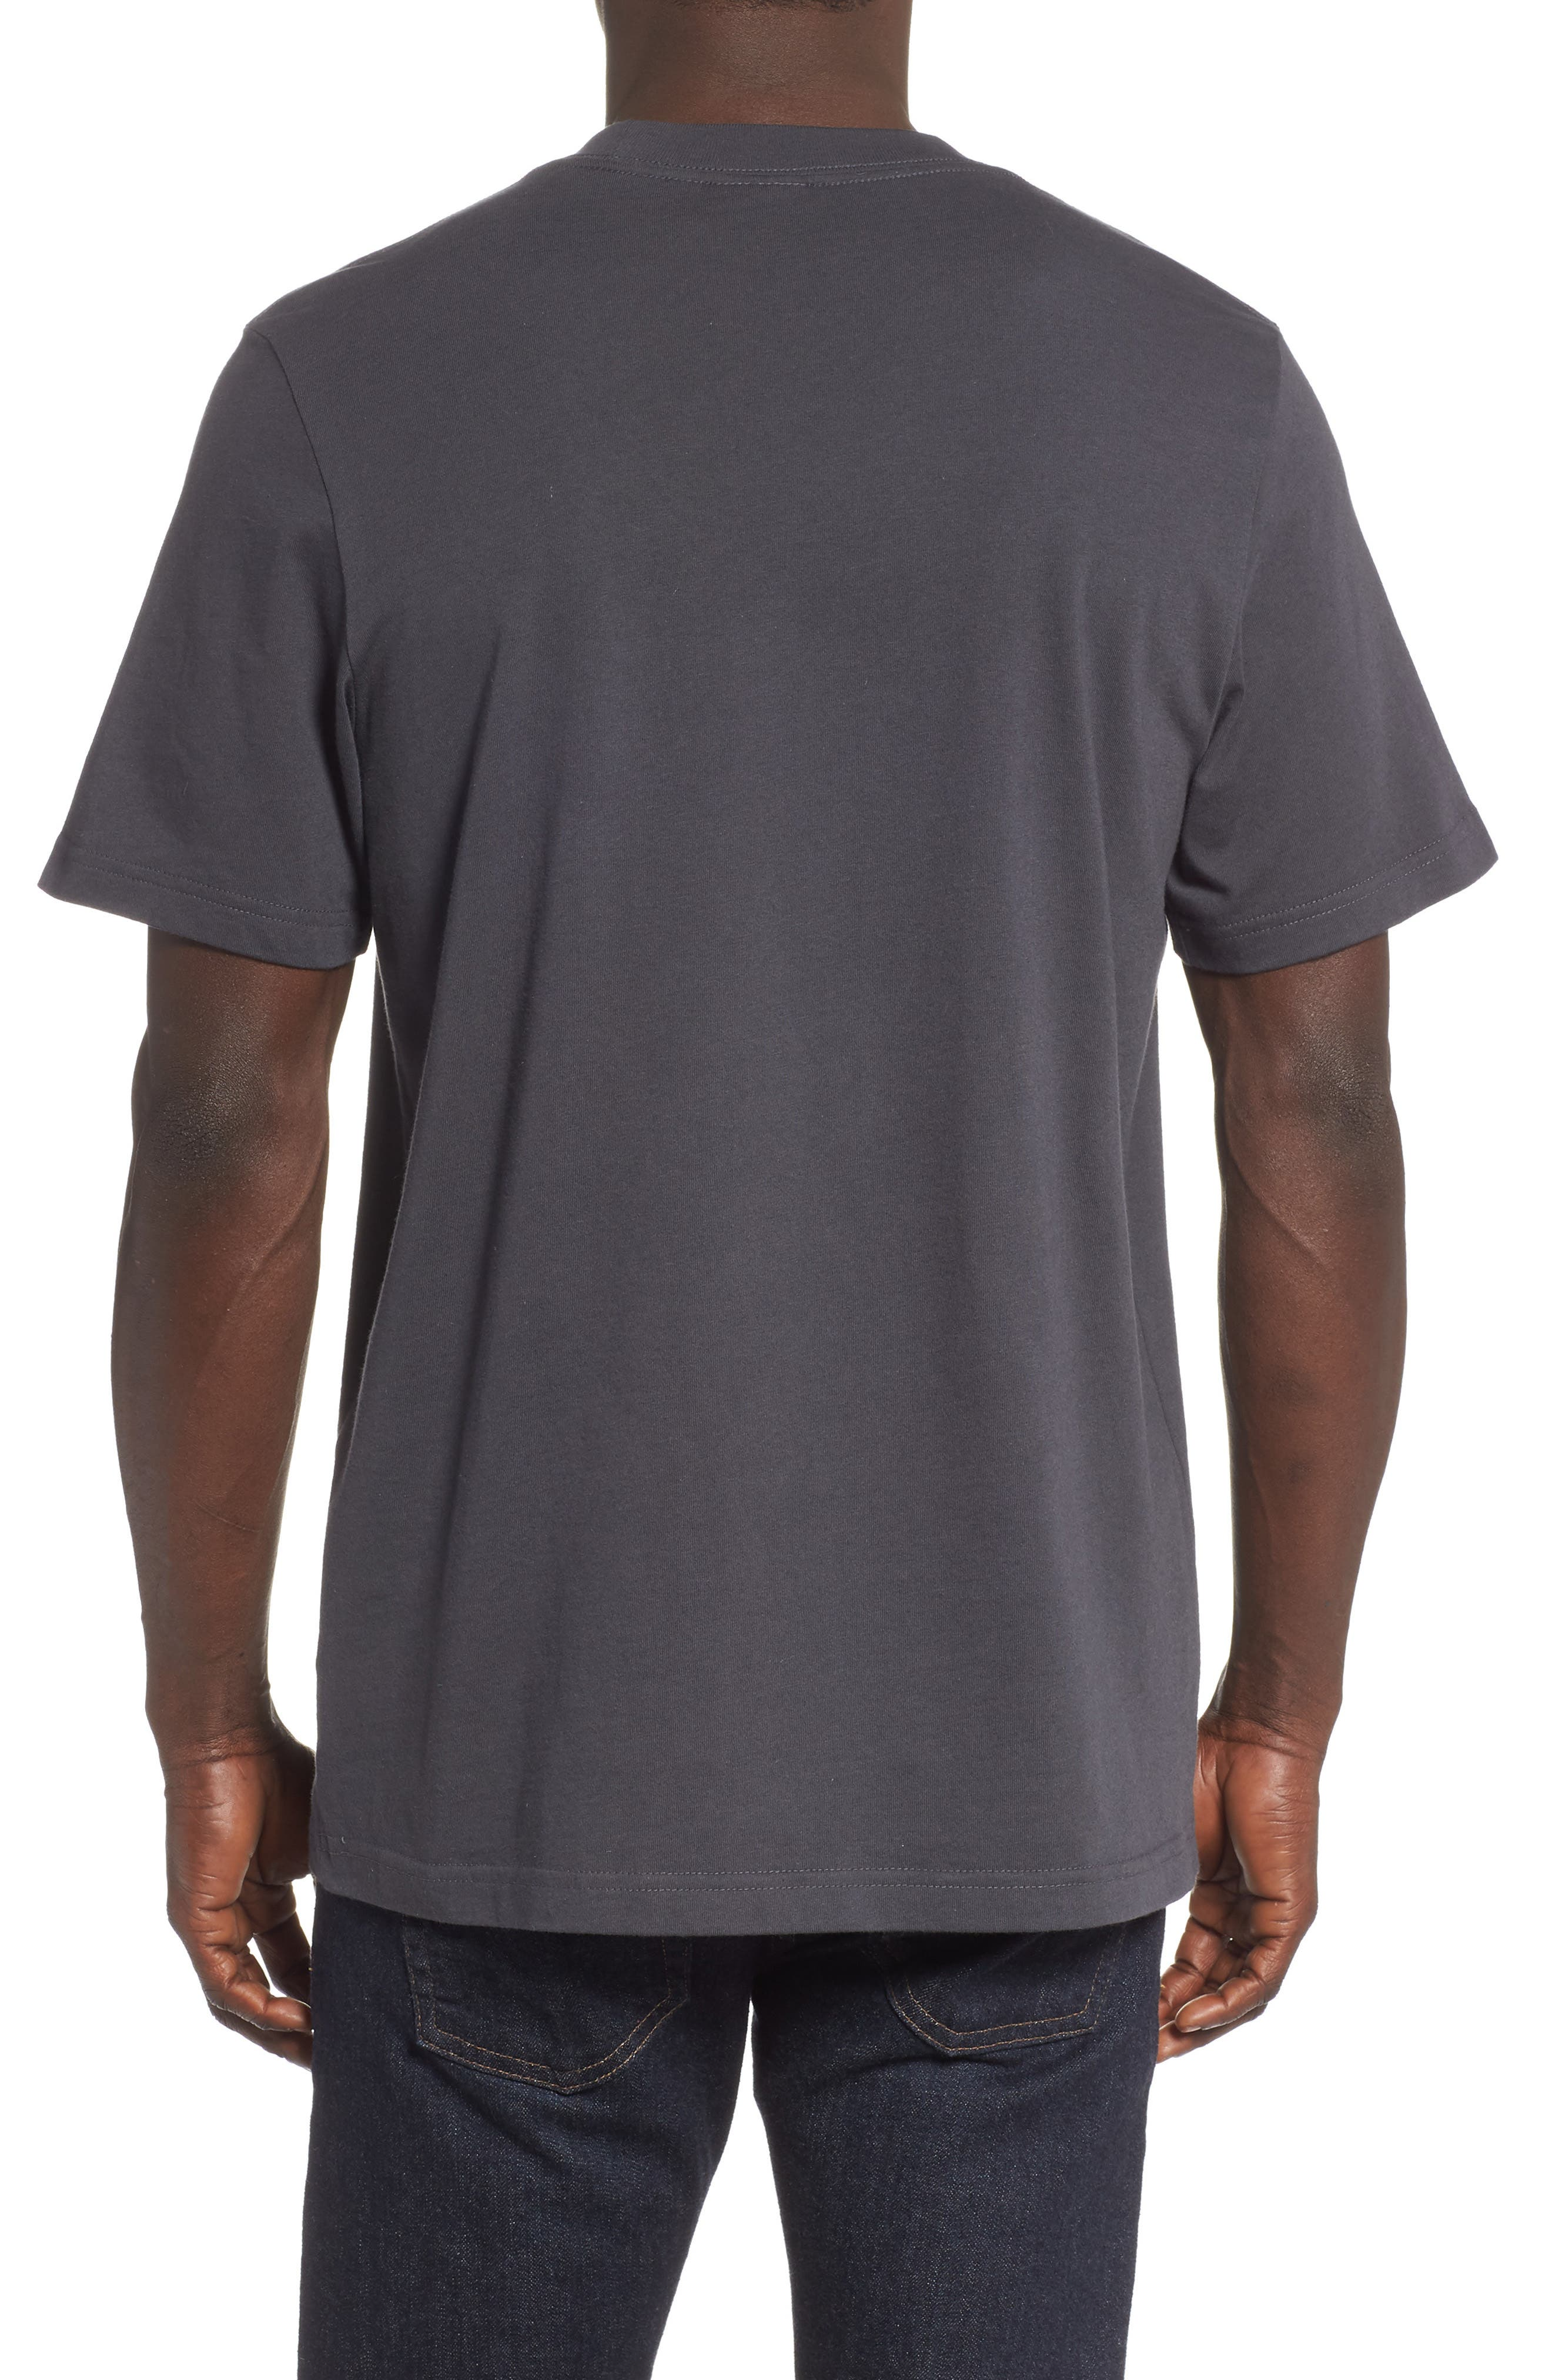 Mens Adidas Originals T Shirts Graphic Tees Nordstrom